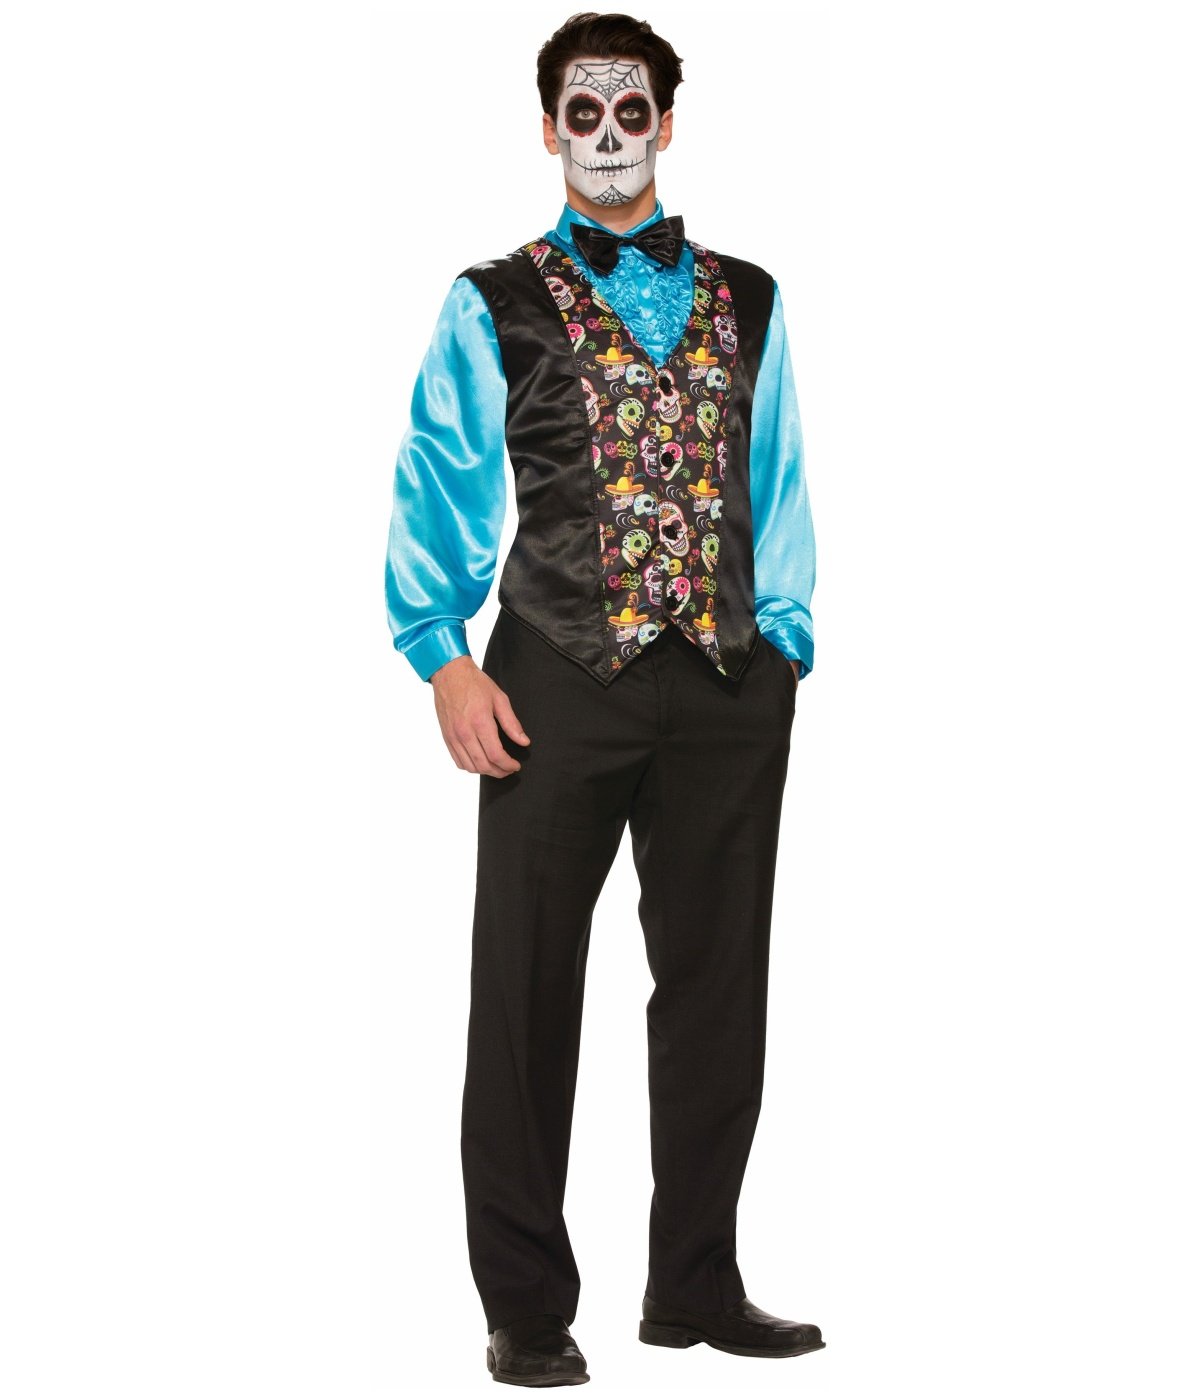 Halloween costumes for adults and kids - We have what you need to make your costume ideas come to life at imsese.cf Shop today to find unique Costume ideas! Life's better in costume.